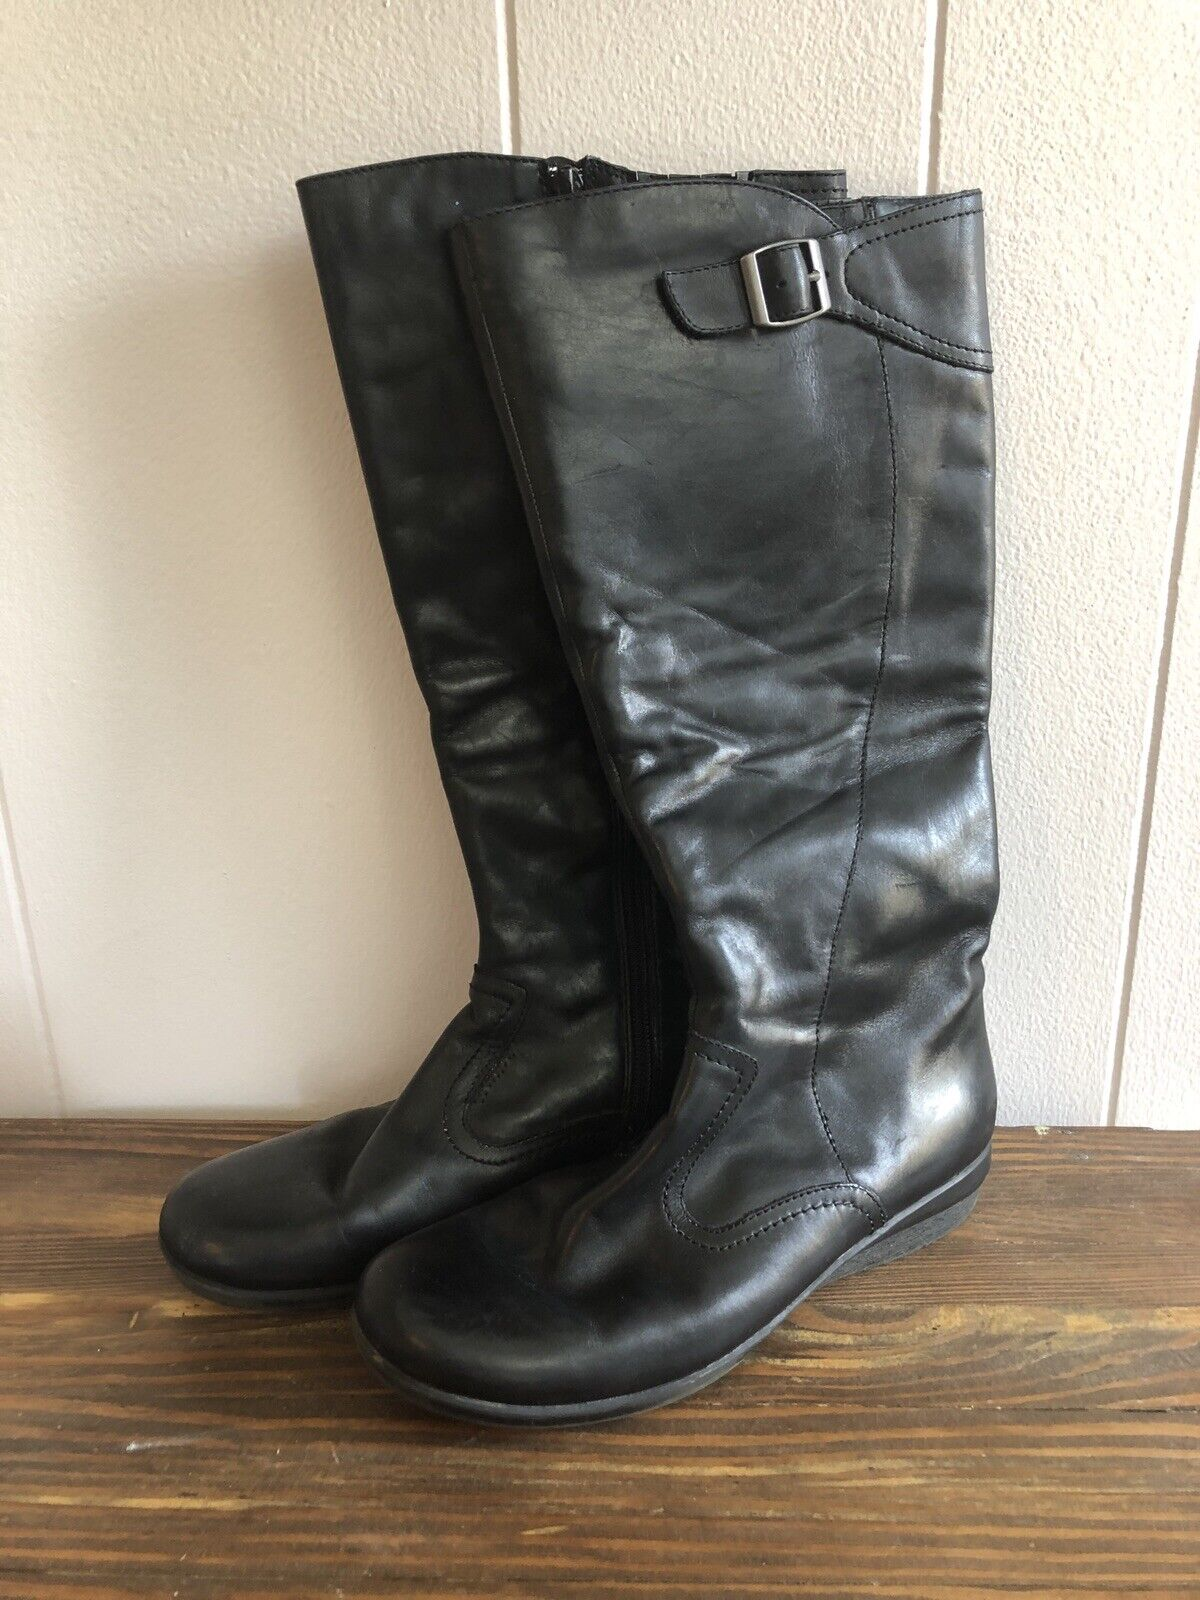 Clarks Clarks Clarks Womens 8 Knee High Side Zip Black Leather Boots 1  tall heel 96938a